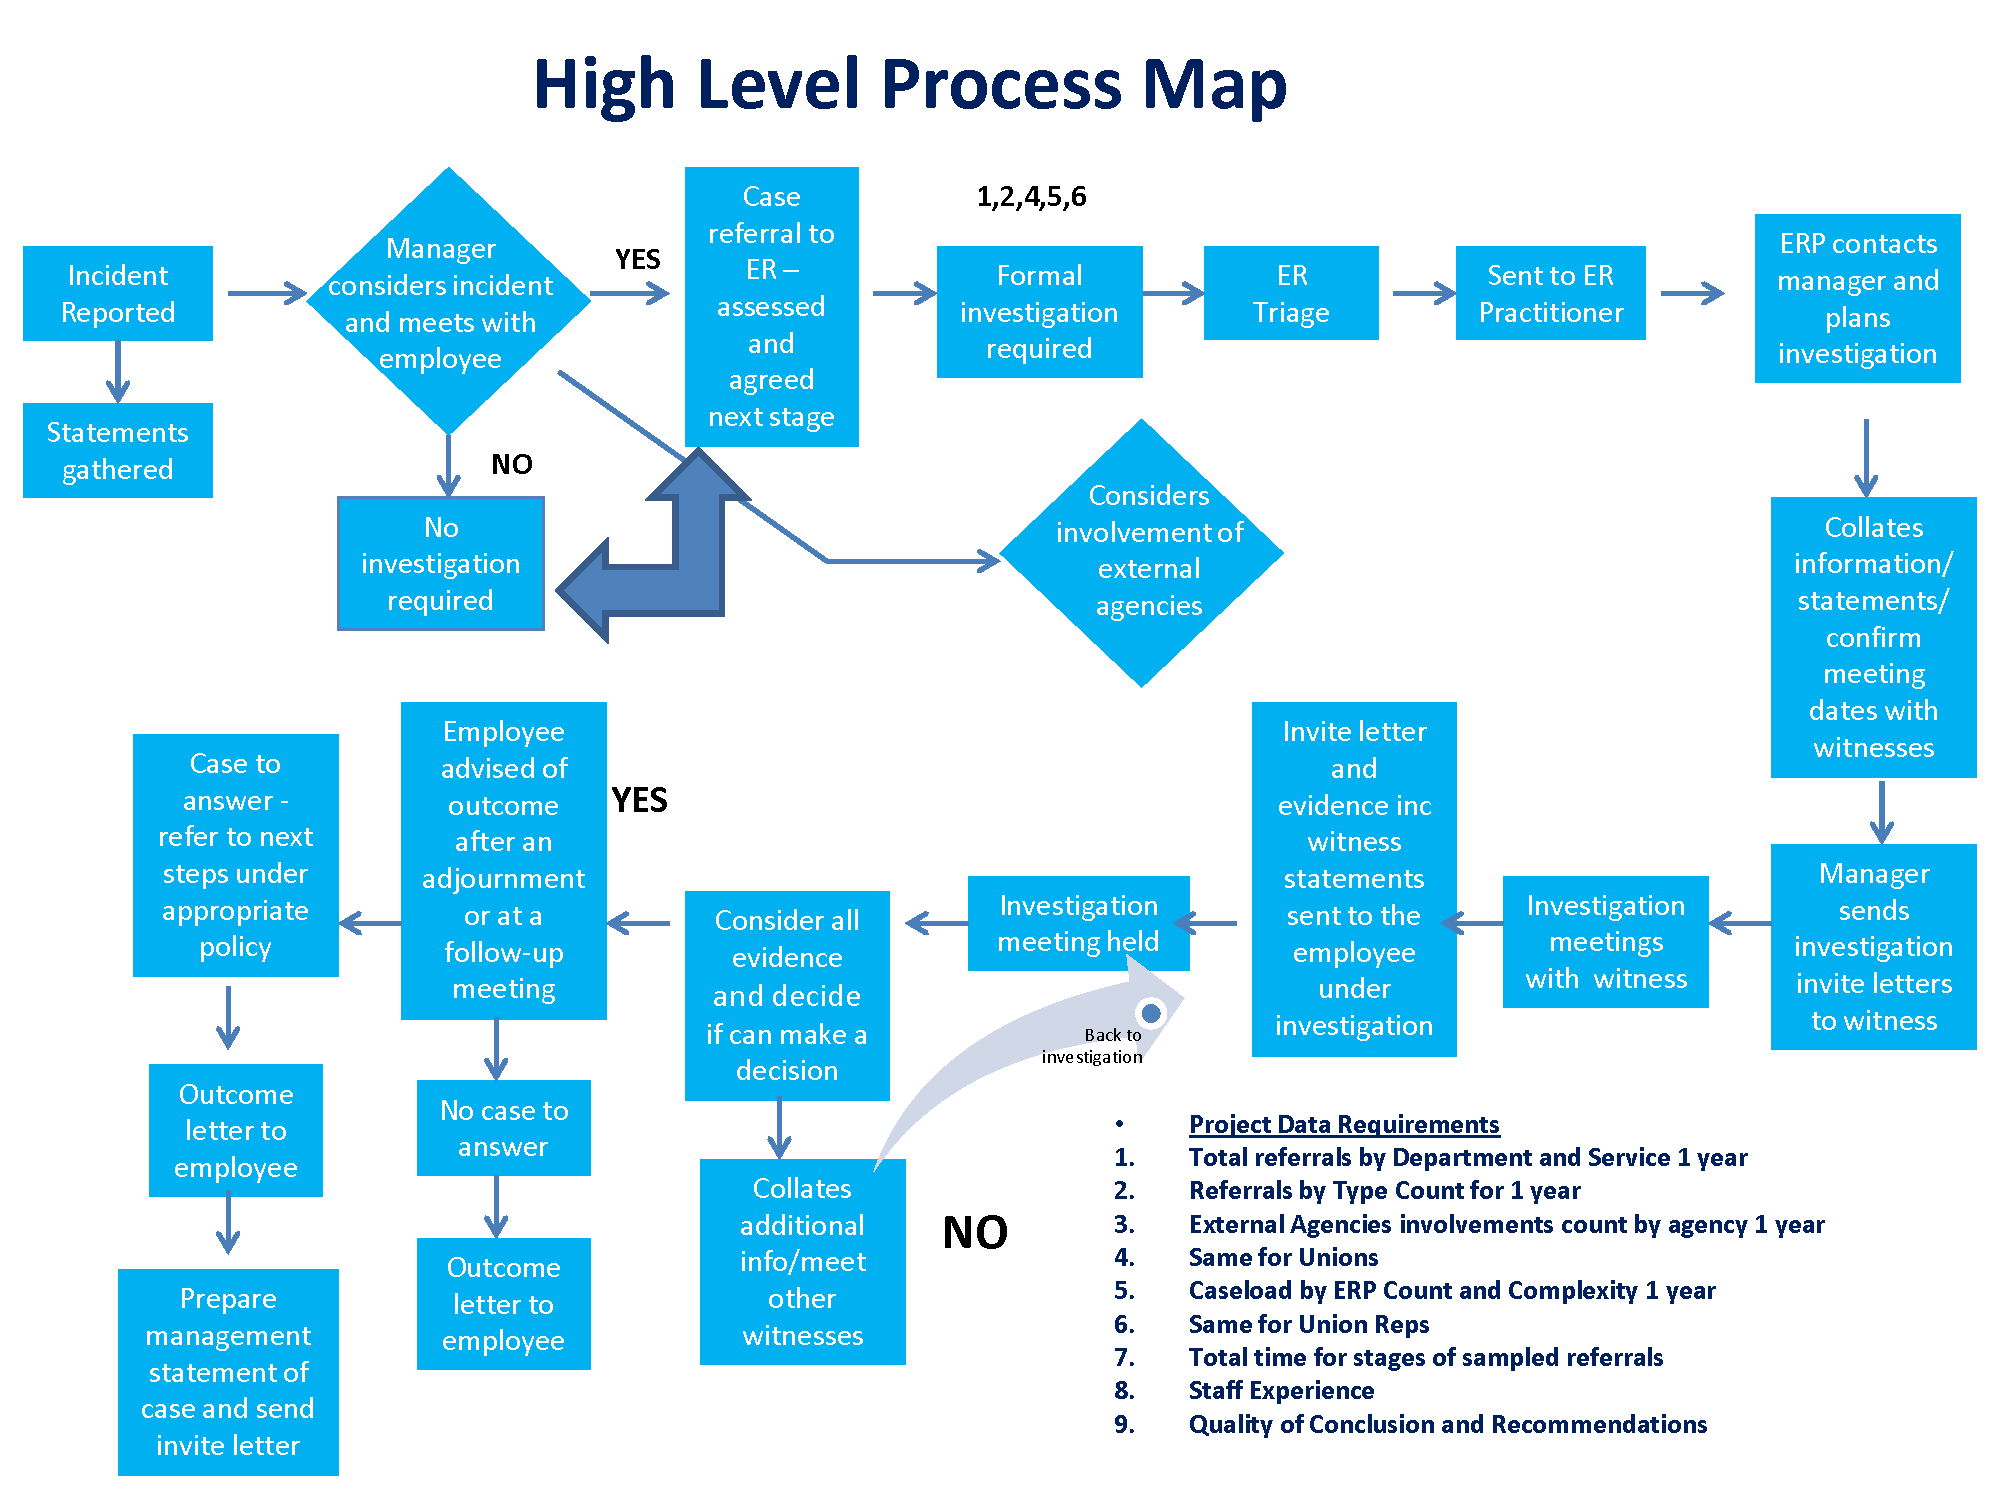 High Level Process Map - Investigation (2).png